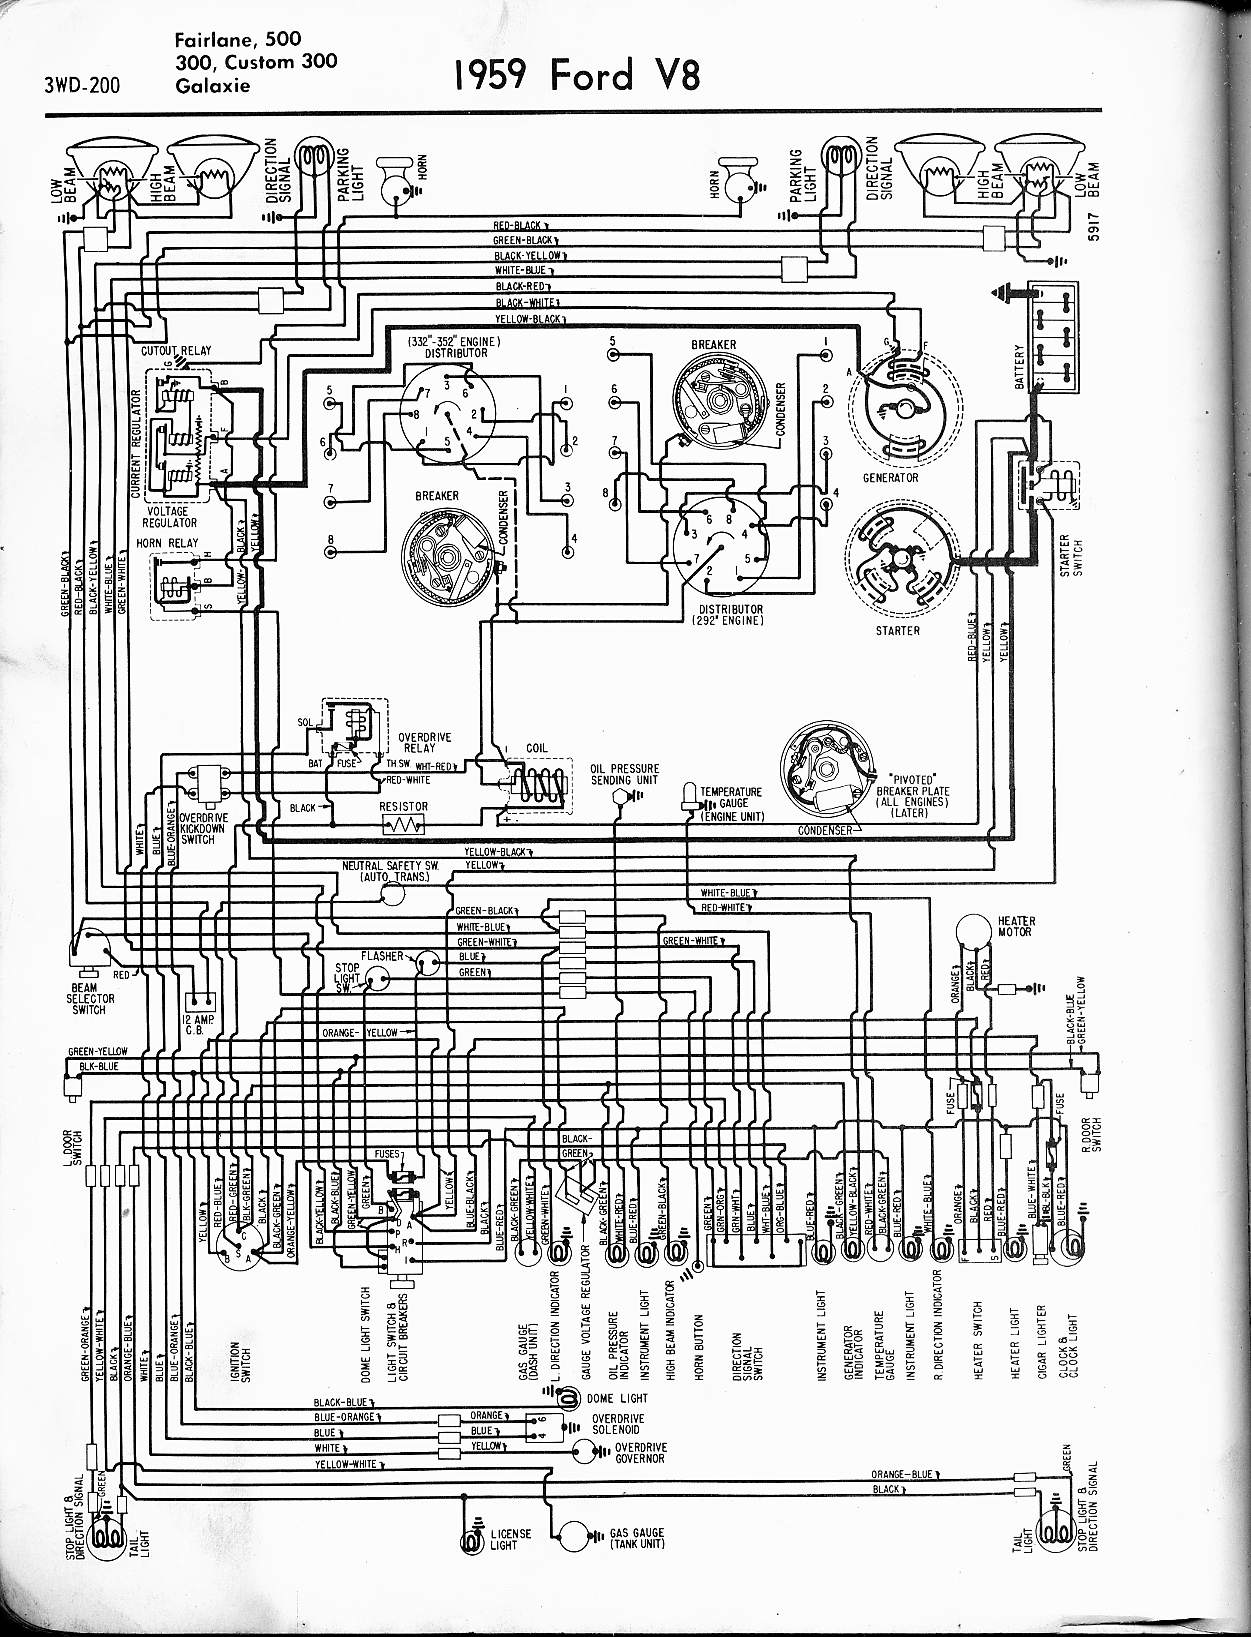 65 Ranchero Neutral Safety Switch Wiring Diagram Worksheet And Ford 57 Diagrams Rh Oldcarmanualproject Com Chevy F 250